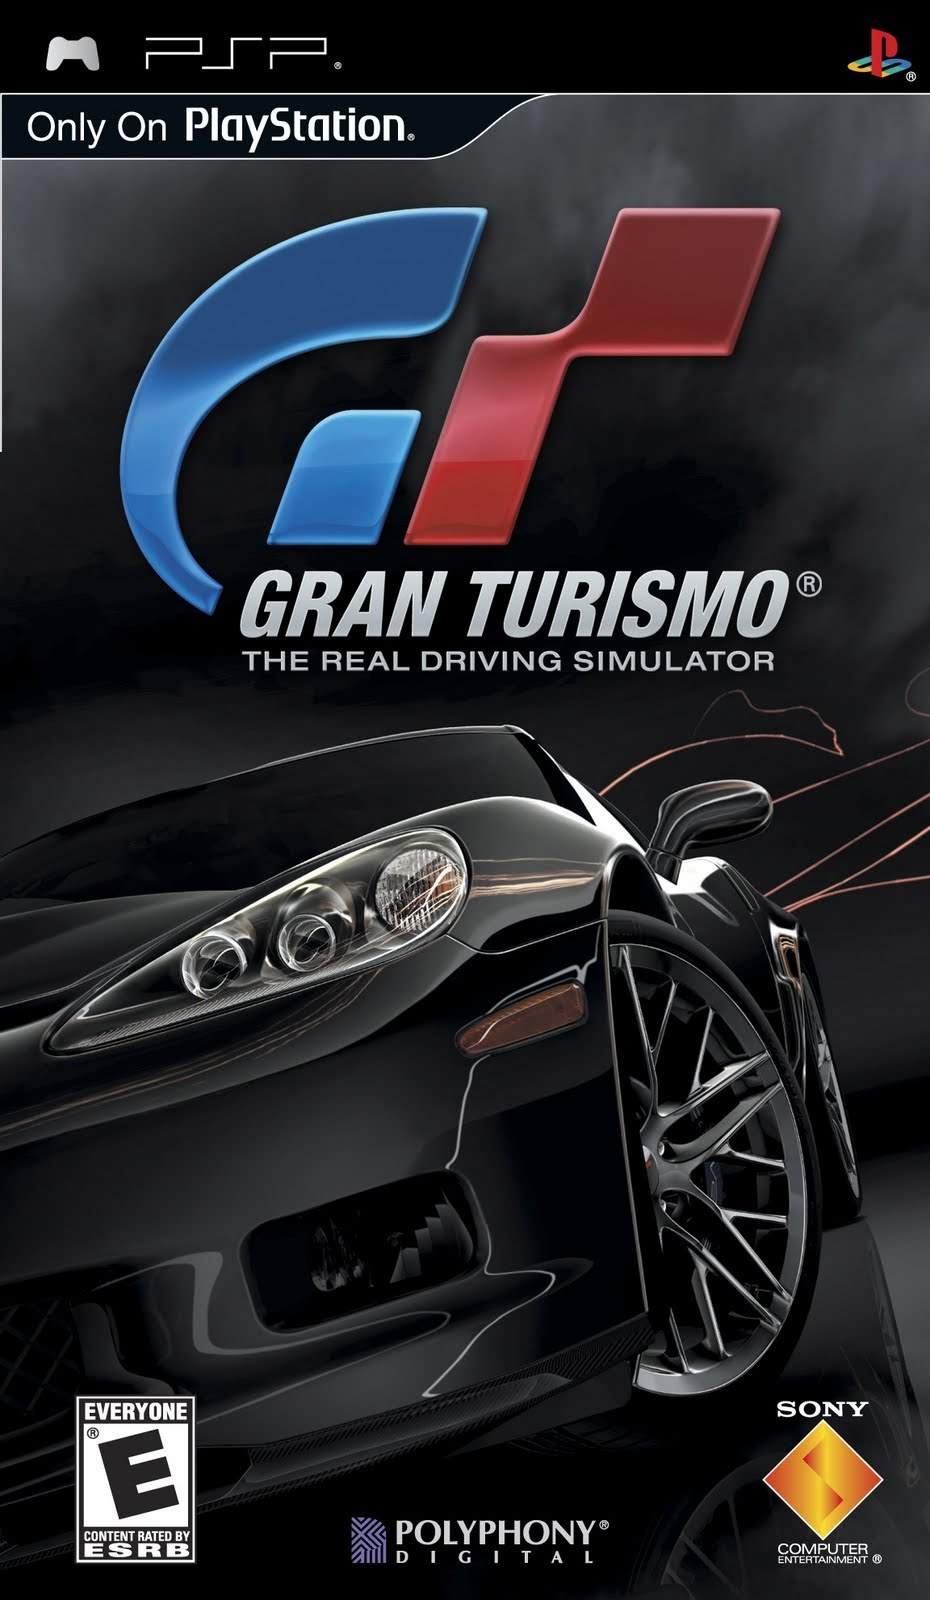 Gran Turismo Images Gran Turismo Psp Cover Hd Wallpaper